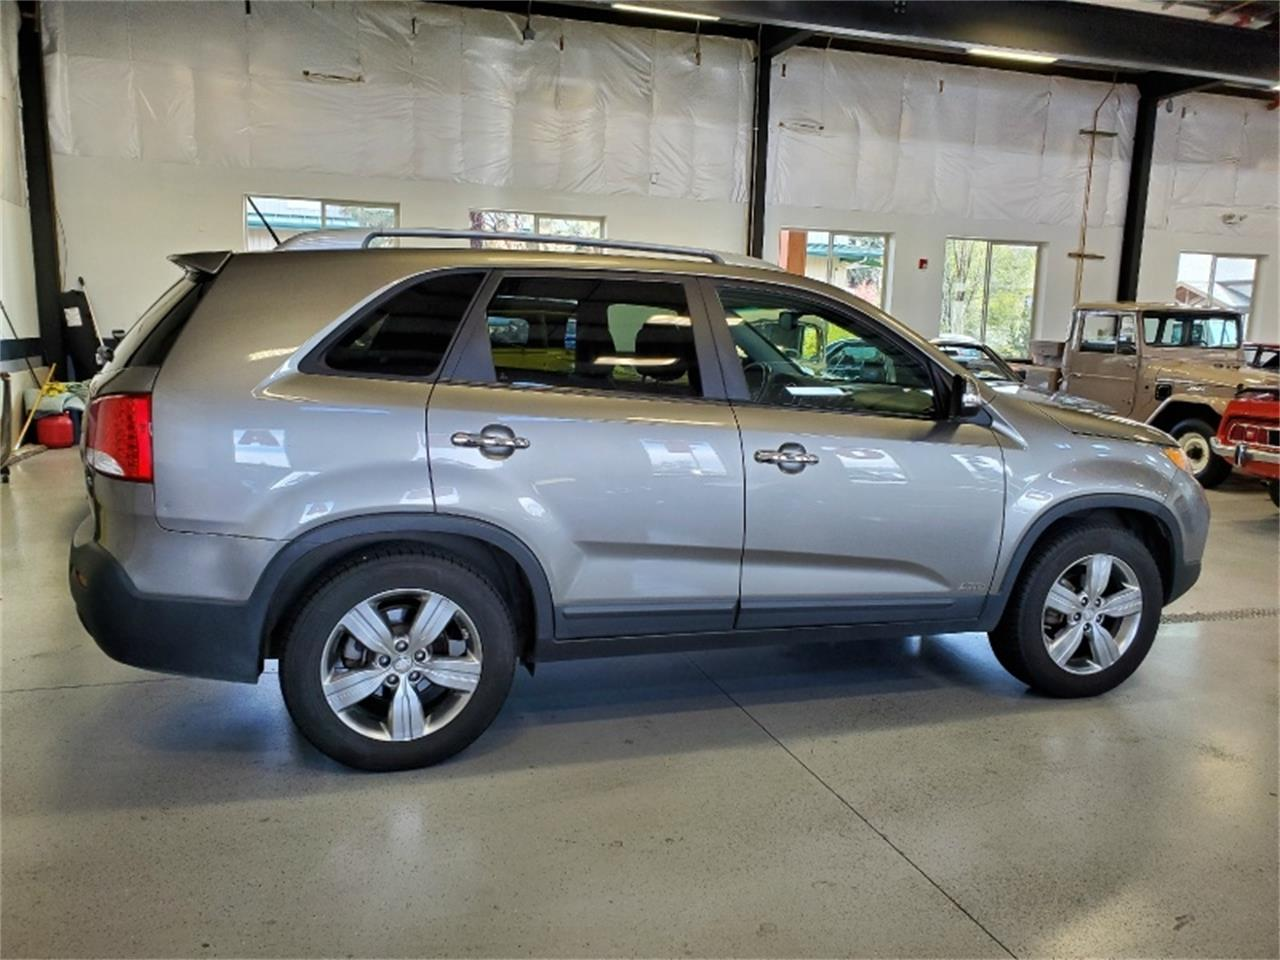 2012 Kia Sorento (CC-1274960) for sale in Bend, Oregon